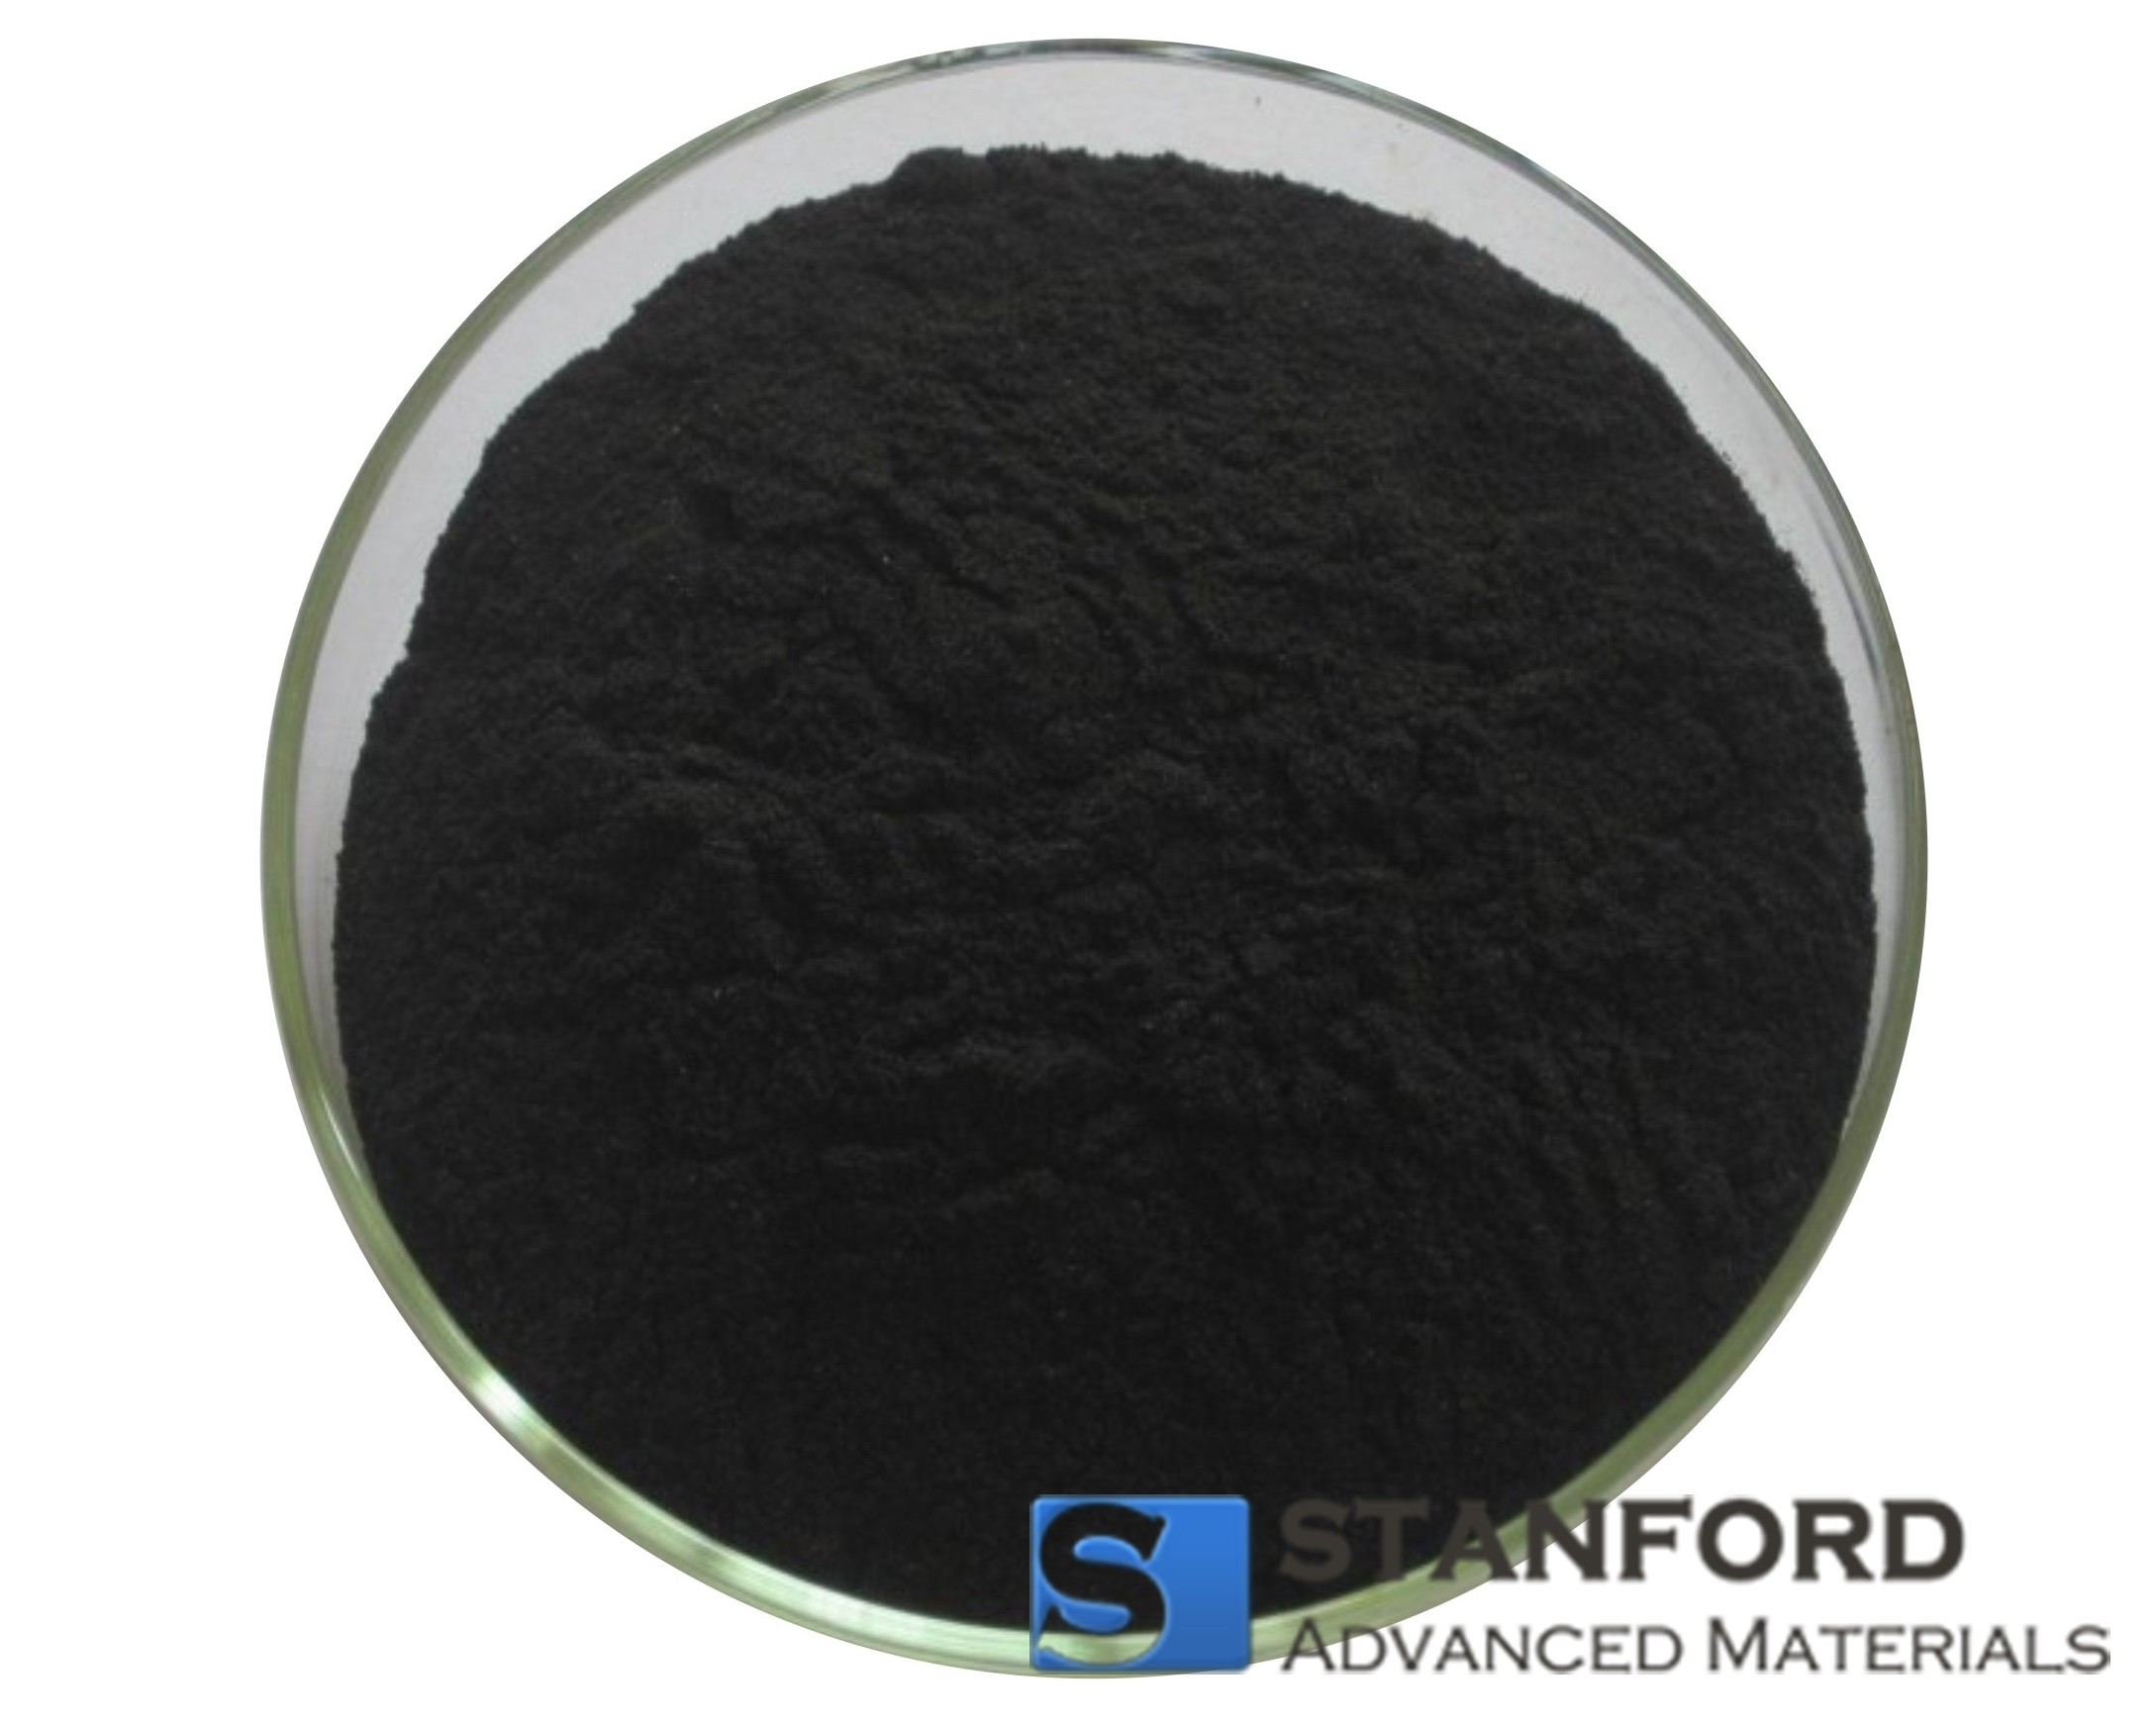 TH1886 Lanthanum Nickel Cobaltite Cathode Powder (LNC Cathode Powder)